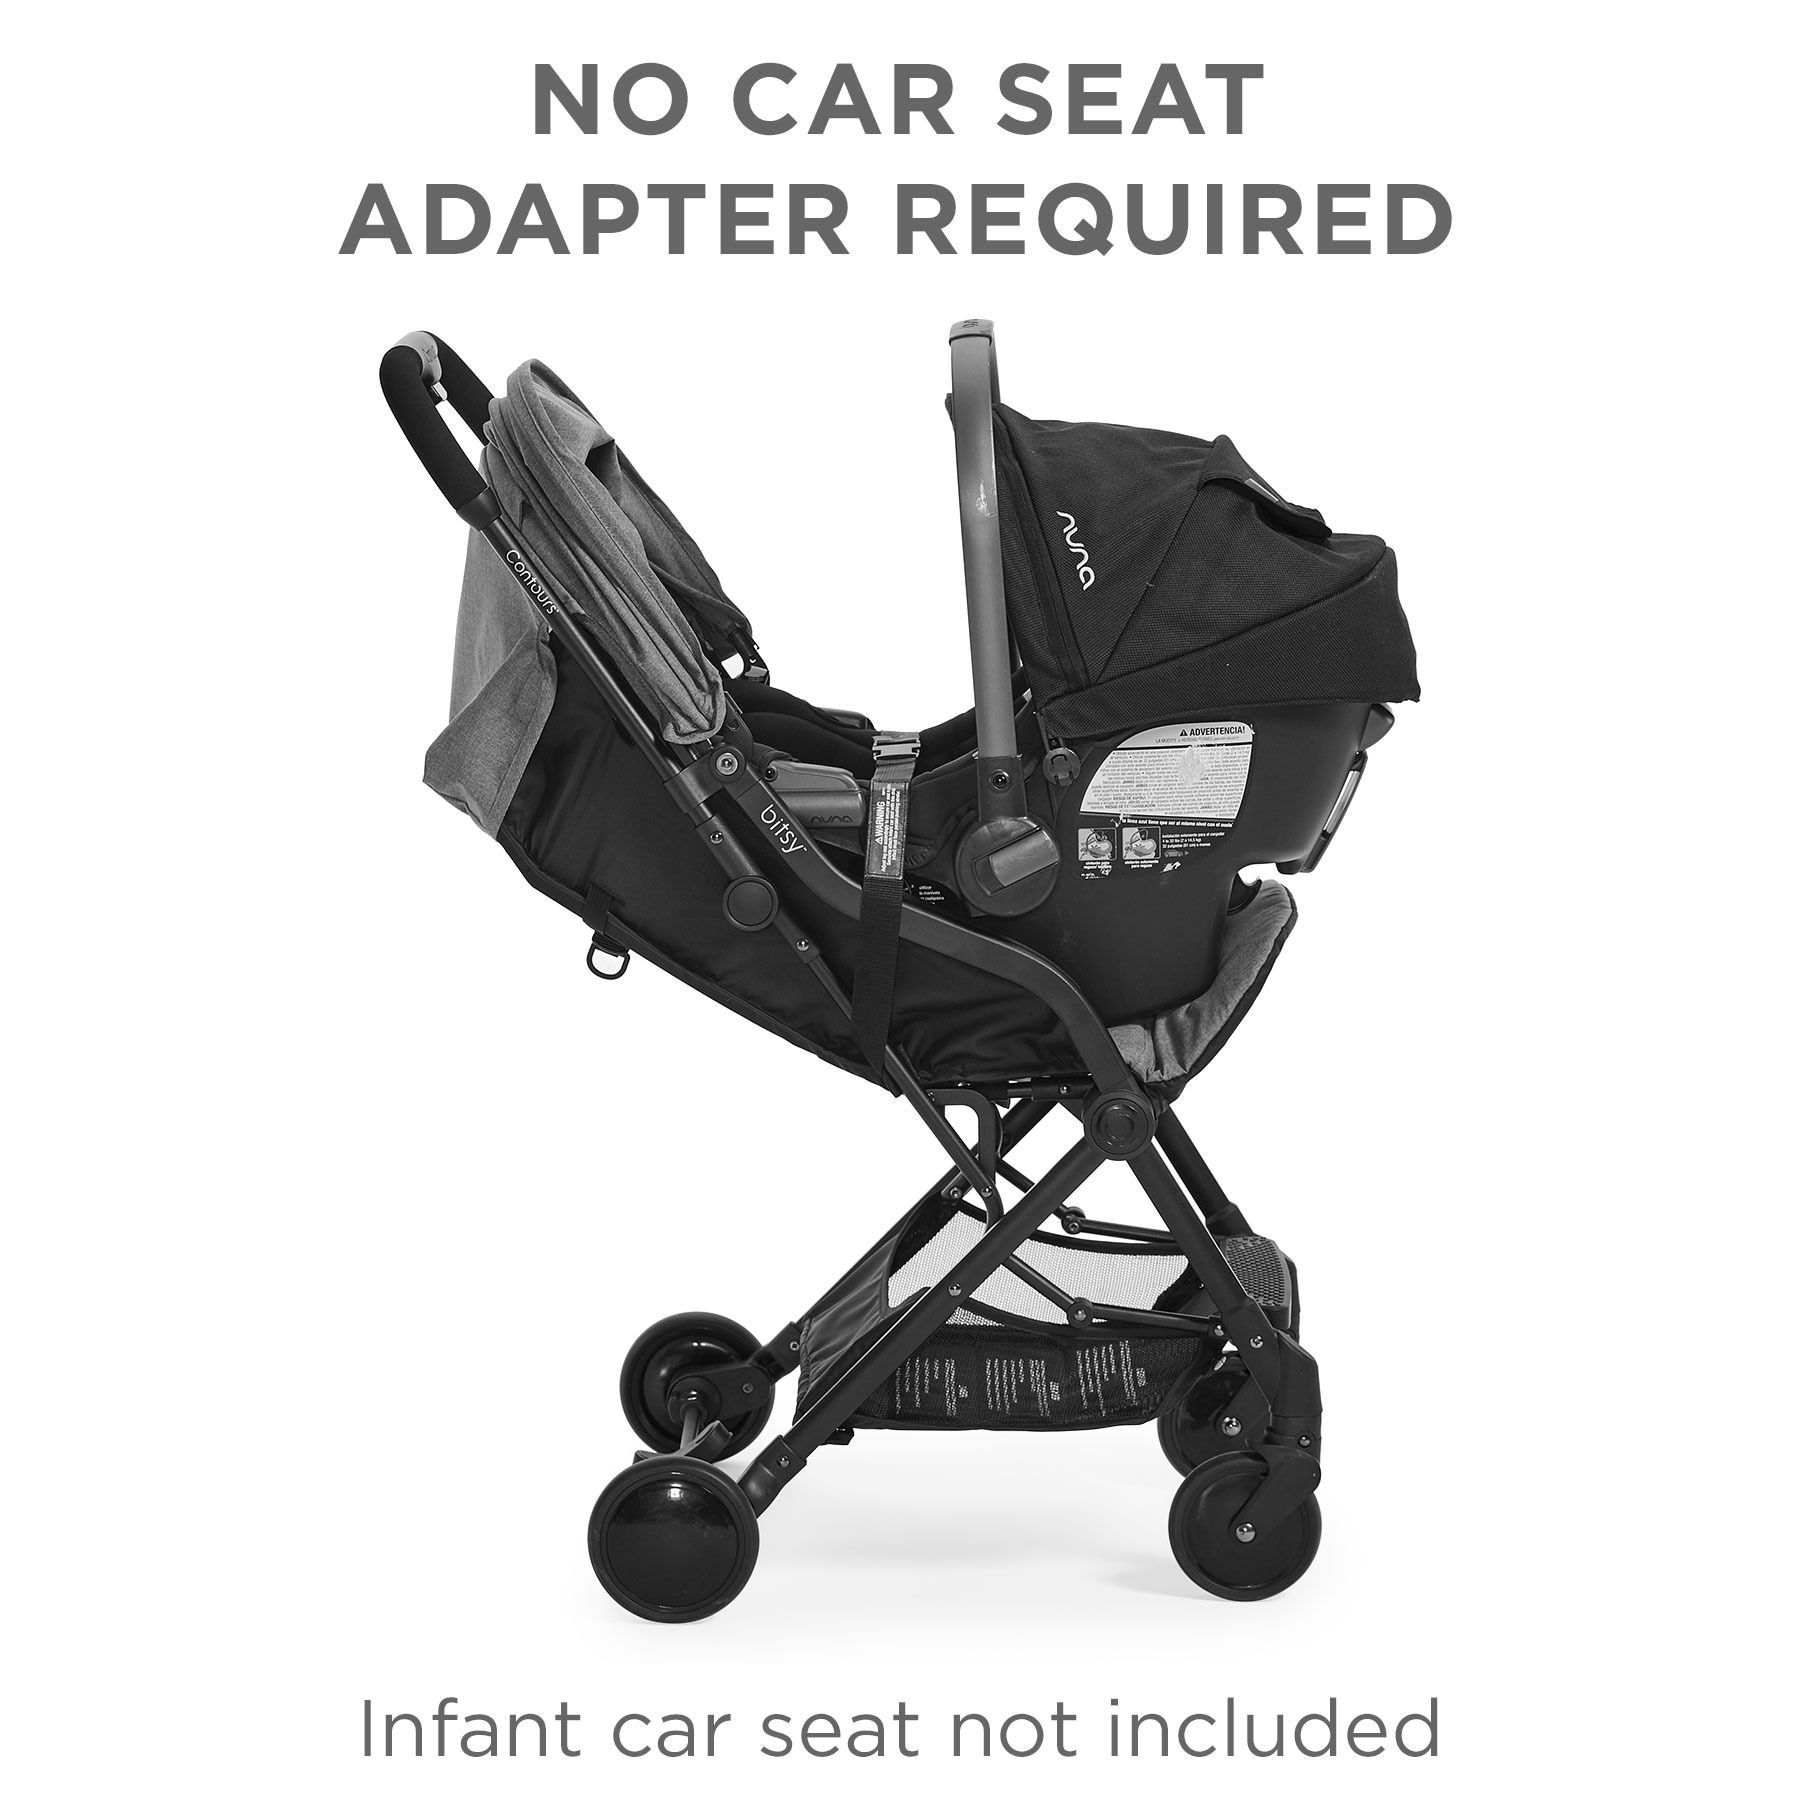 Best Travel Stroller (With images) Baby car seats